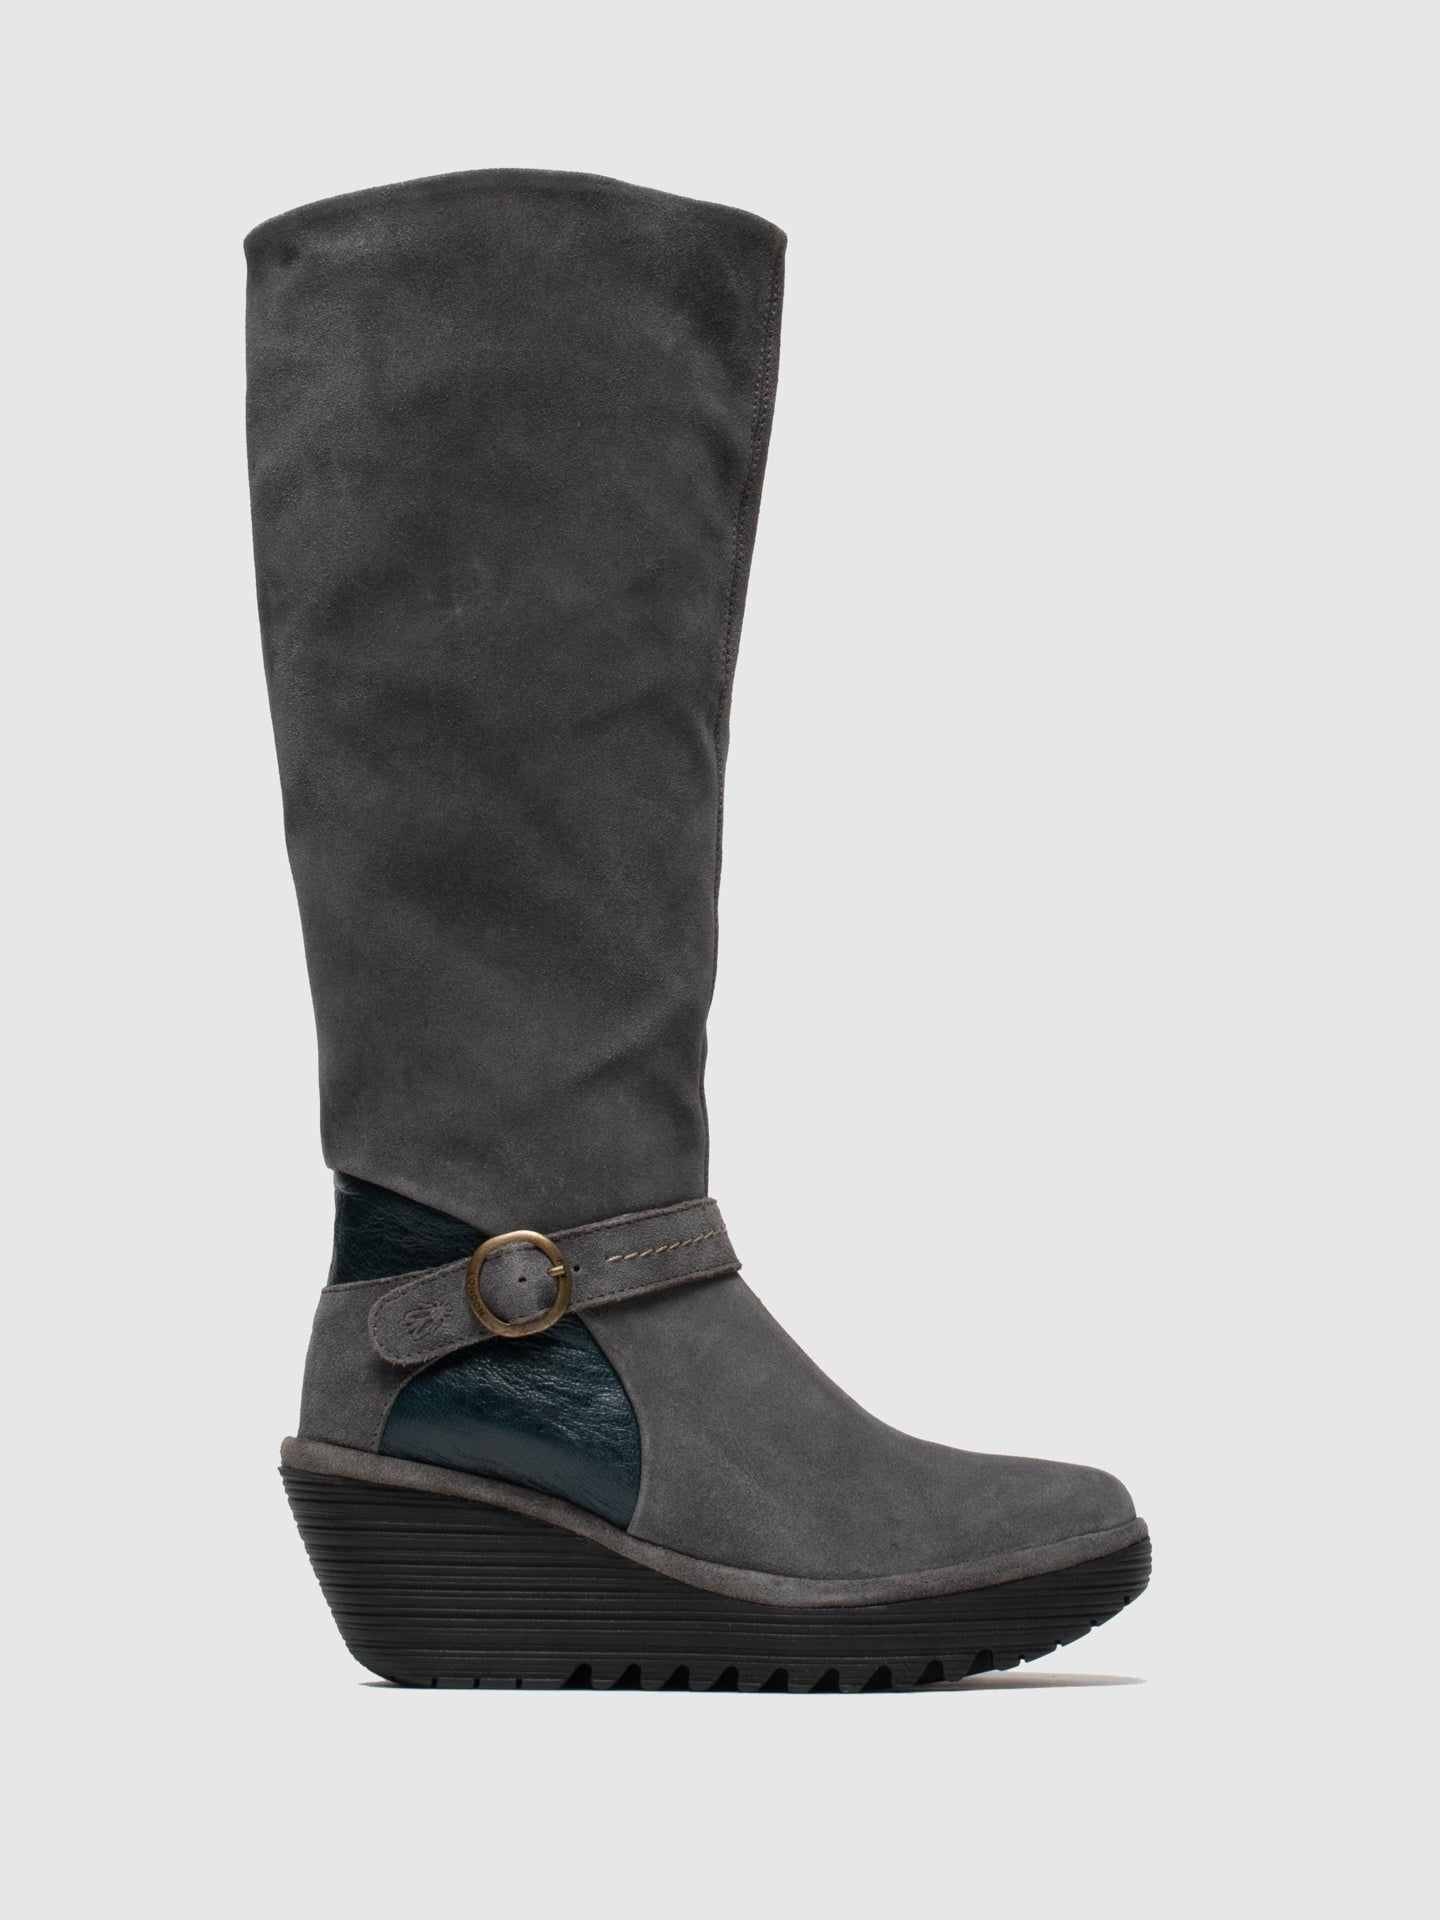 Fly London Buckle Boots YAVU084FLY DIESEL/DK PETROL